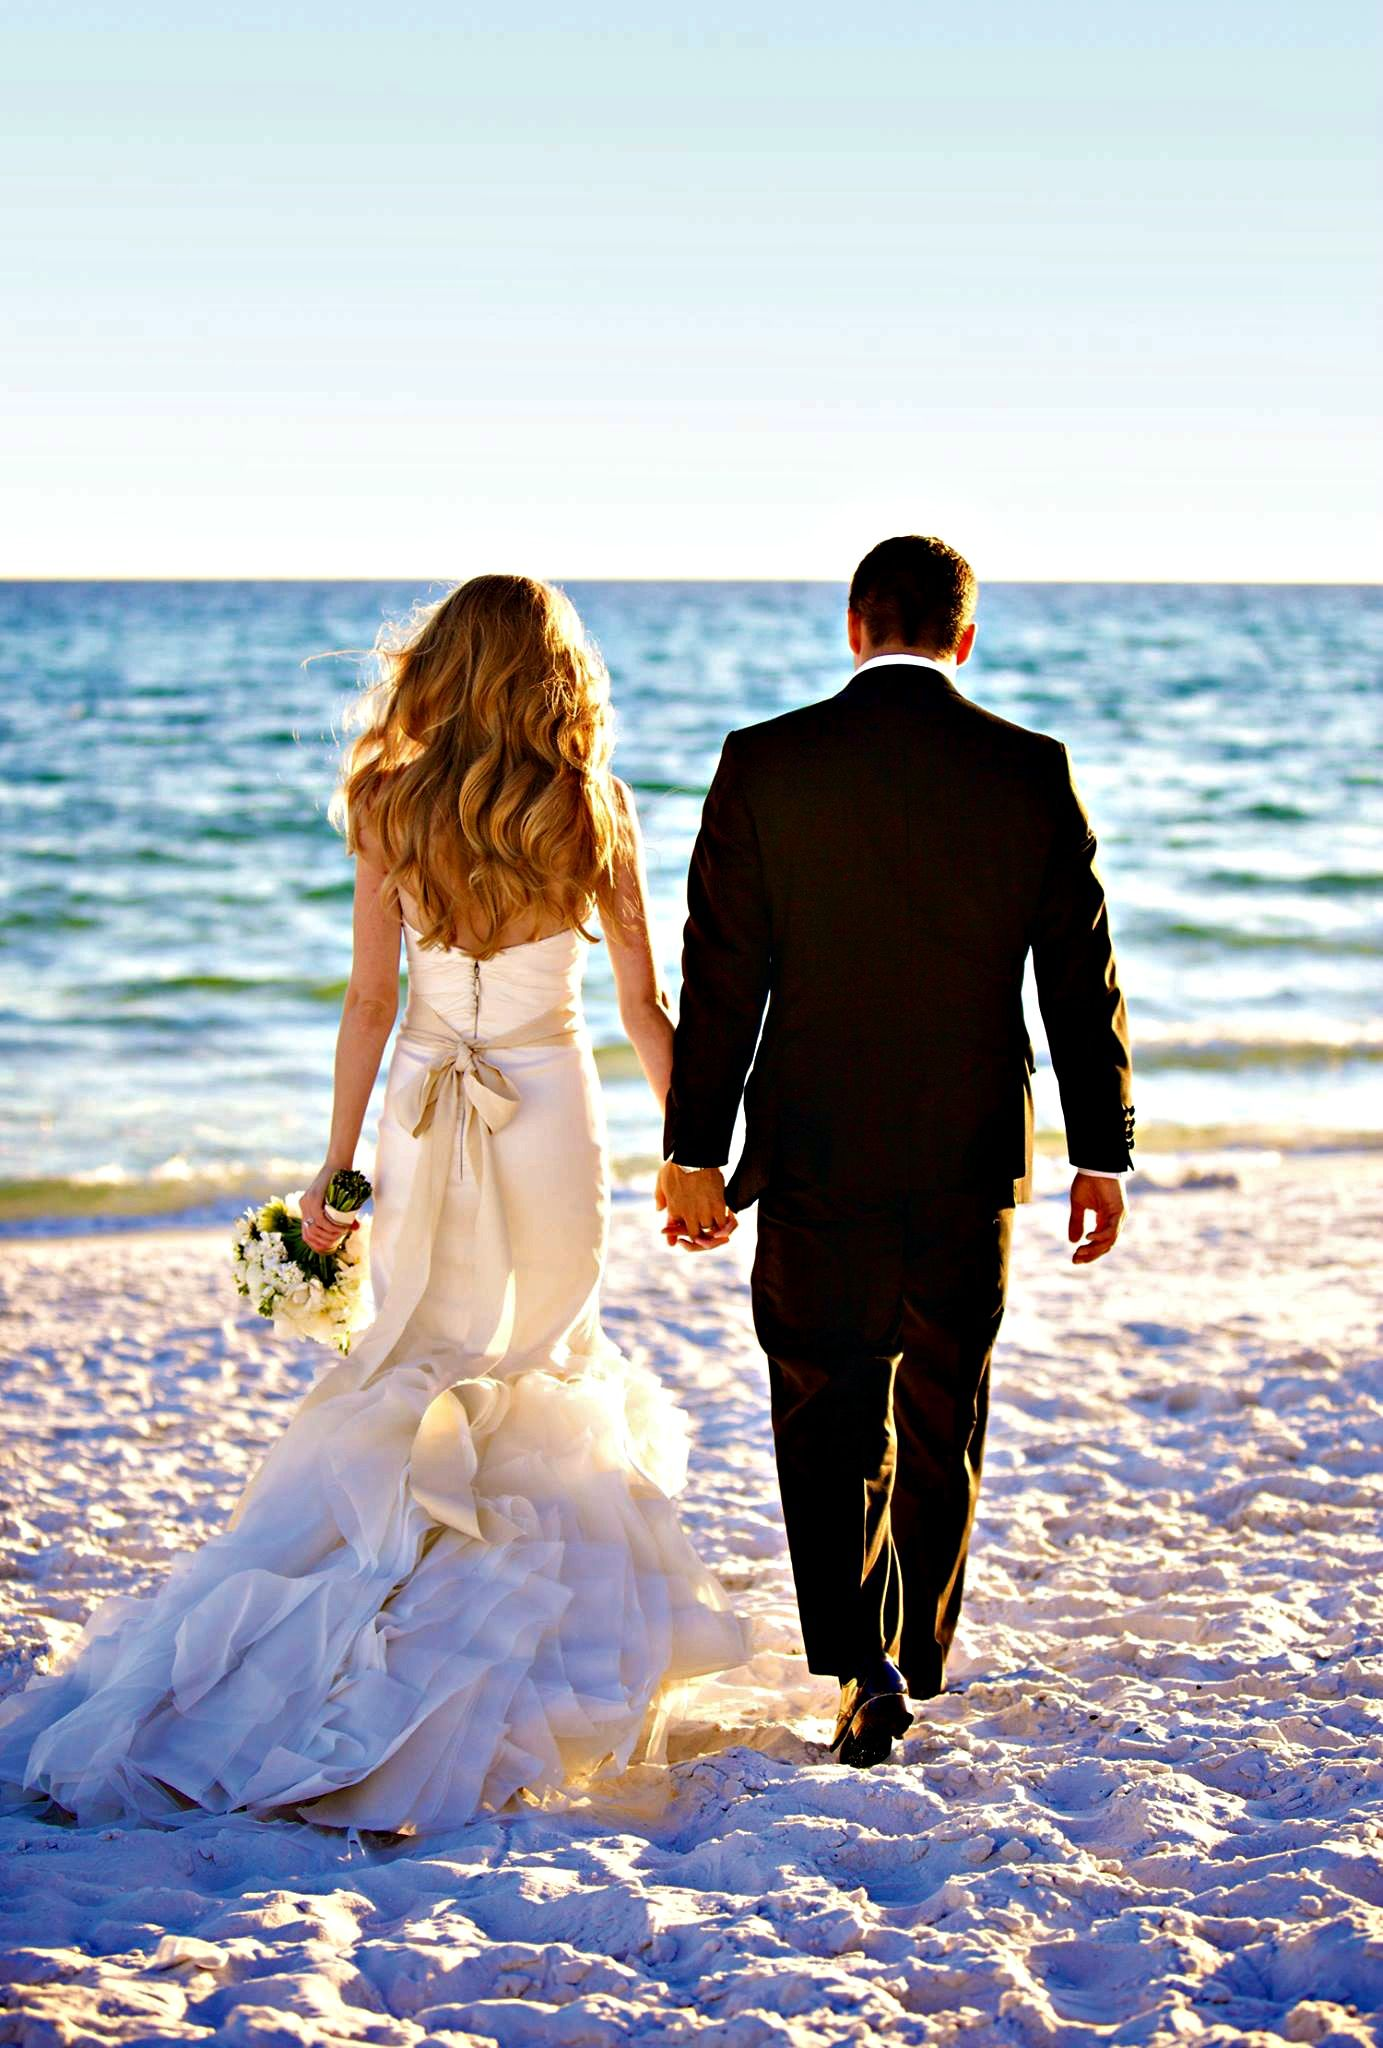 Both Romantic And Practical Beach Weddings Are Popular With Busy